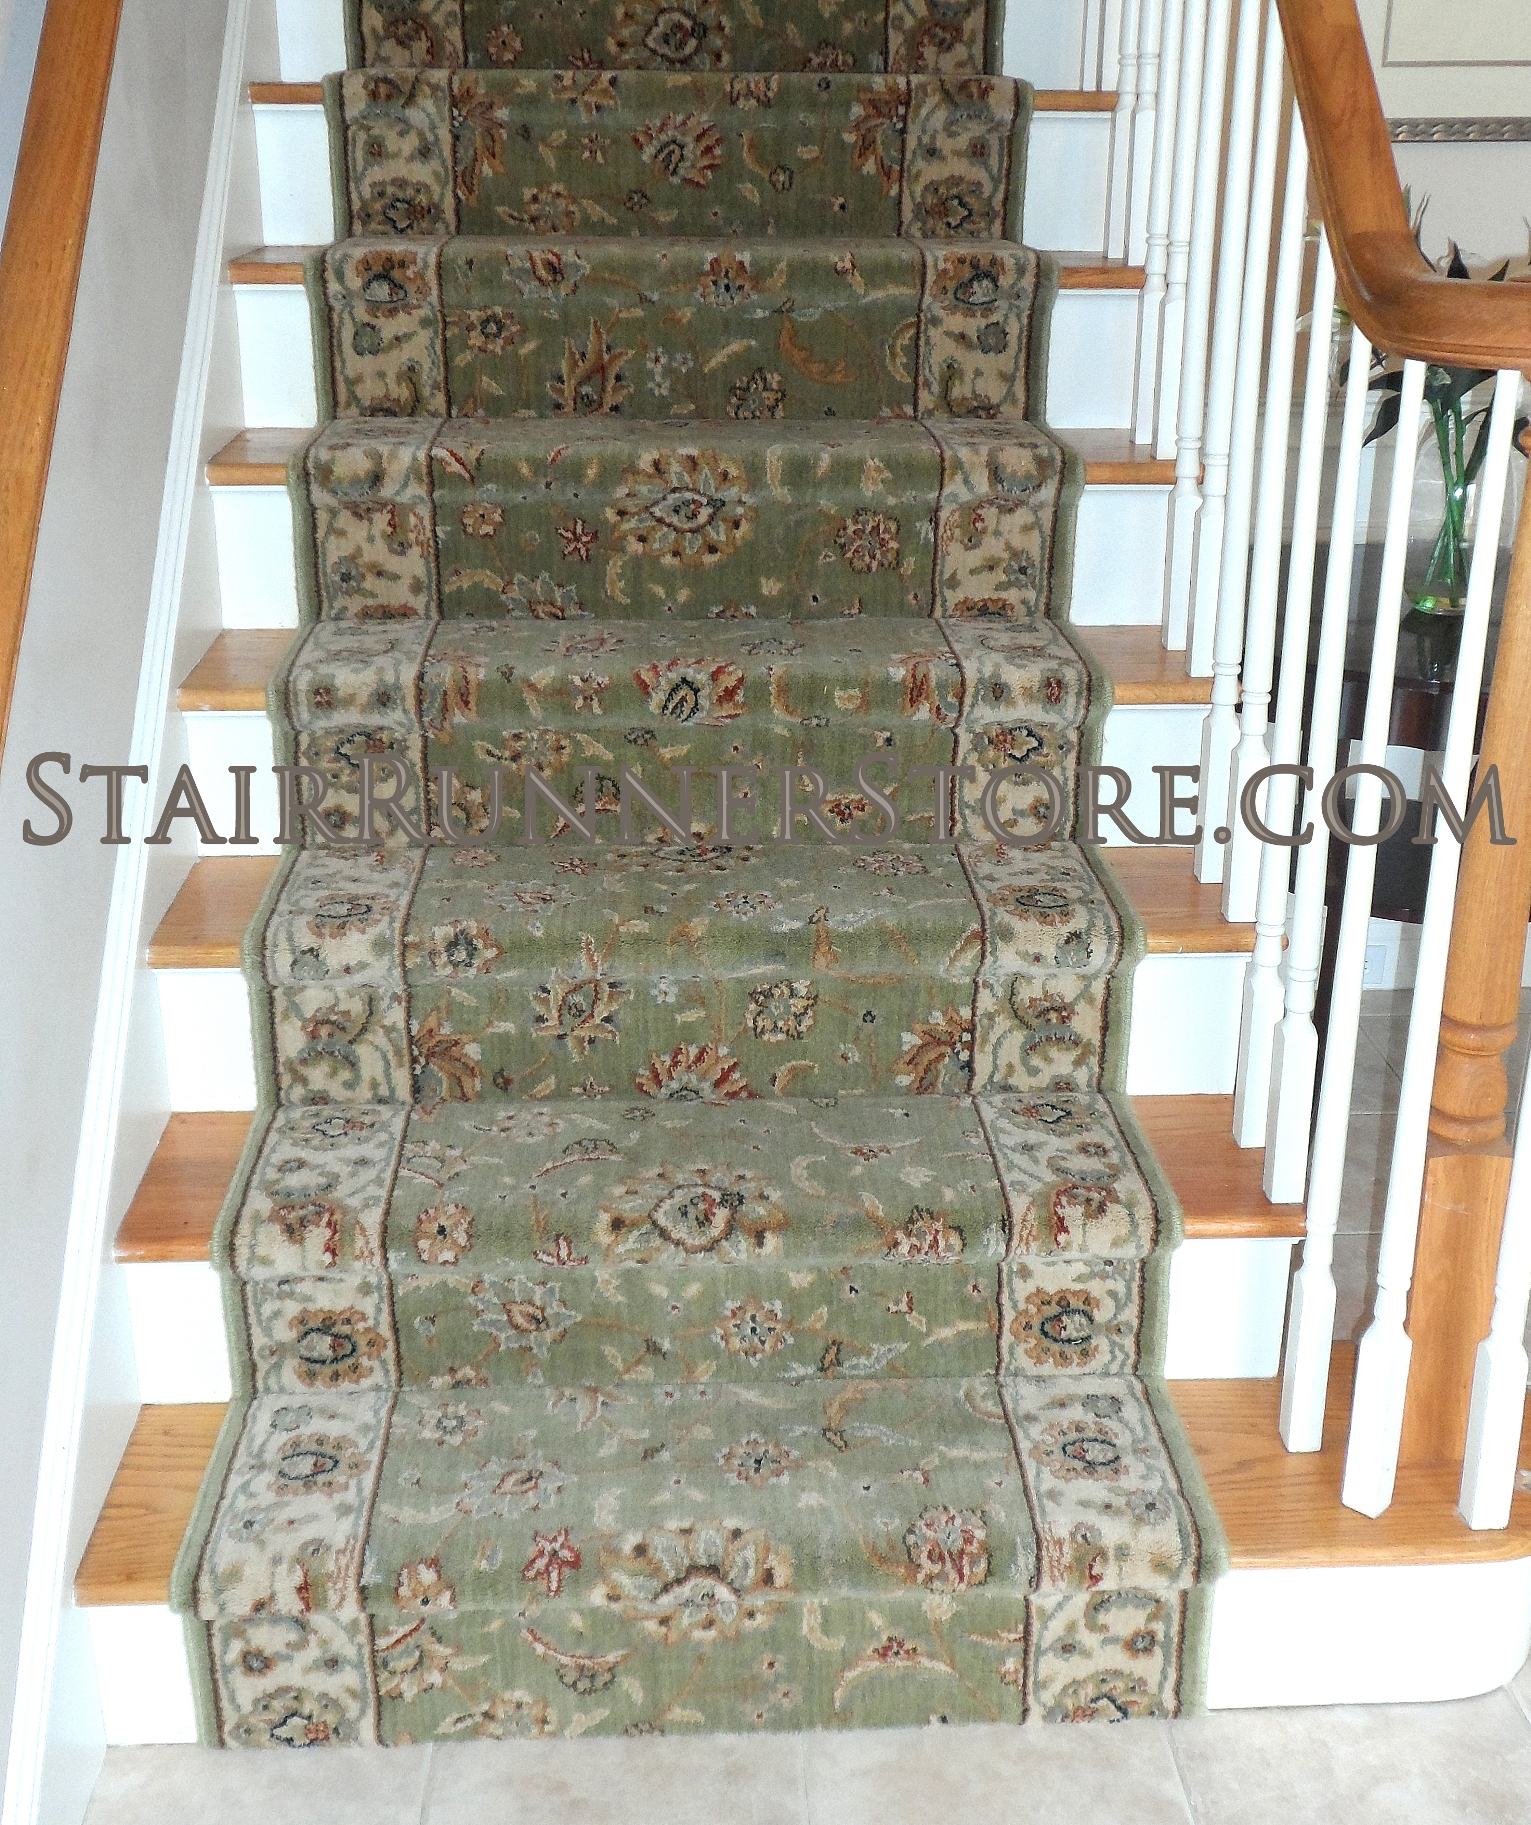 Www Stairrunnershop Com Carpet Runner Connecticut Custom Runner Stair Carpet Stair Carpet Runner Stair Runner Installation Stair Runner Landing Stair Runners Stairrunner Stairrunnerstore Com Archives Stair Runner Store Blog